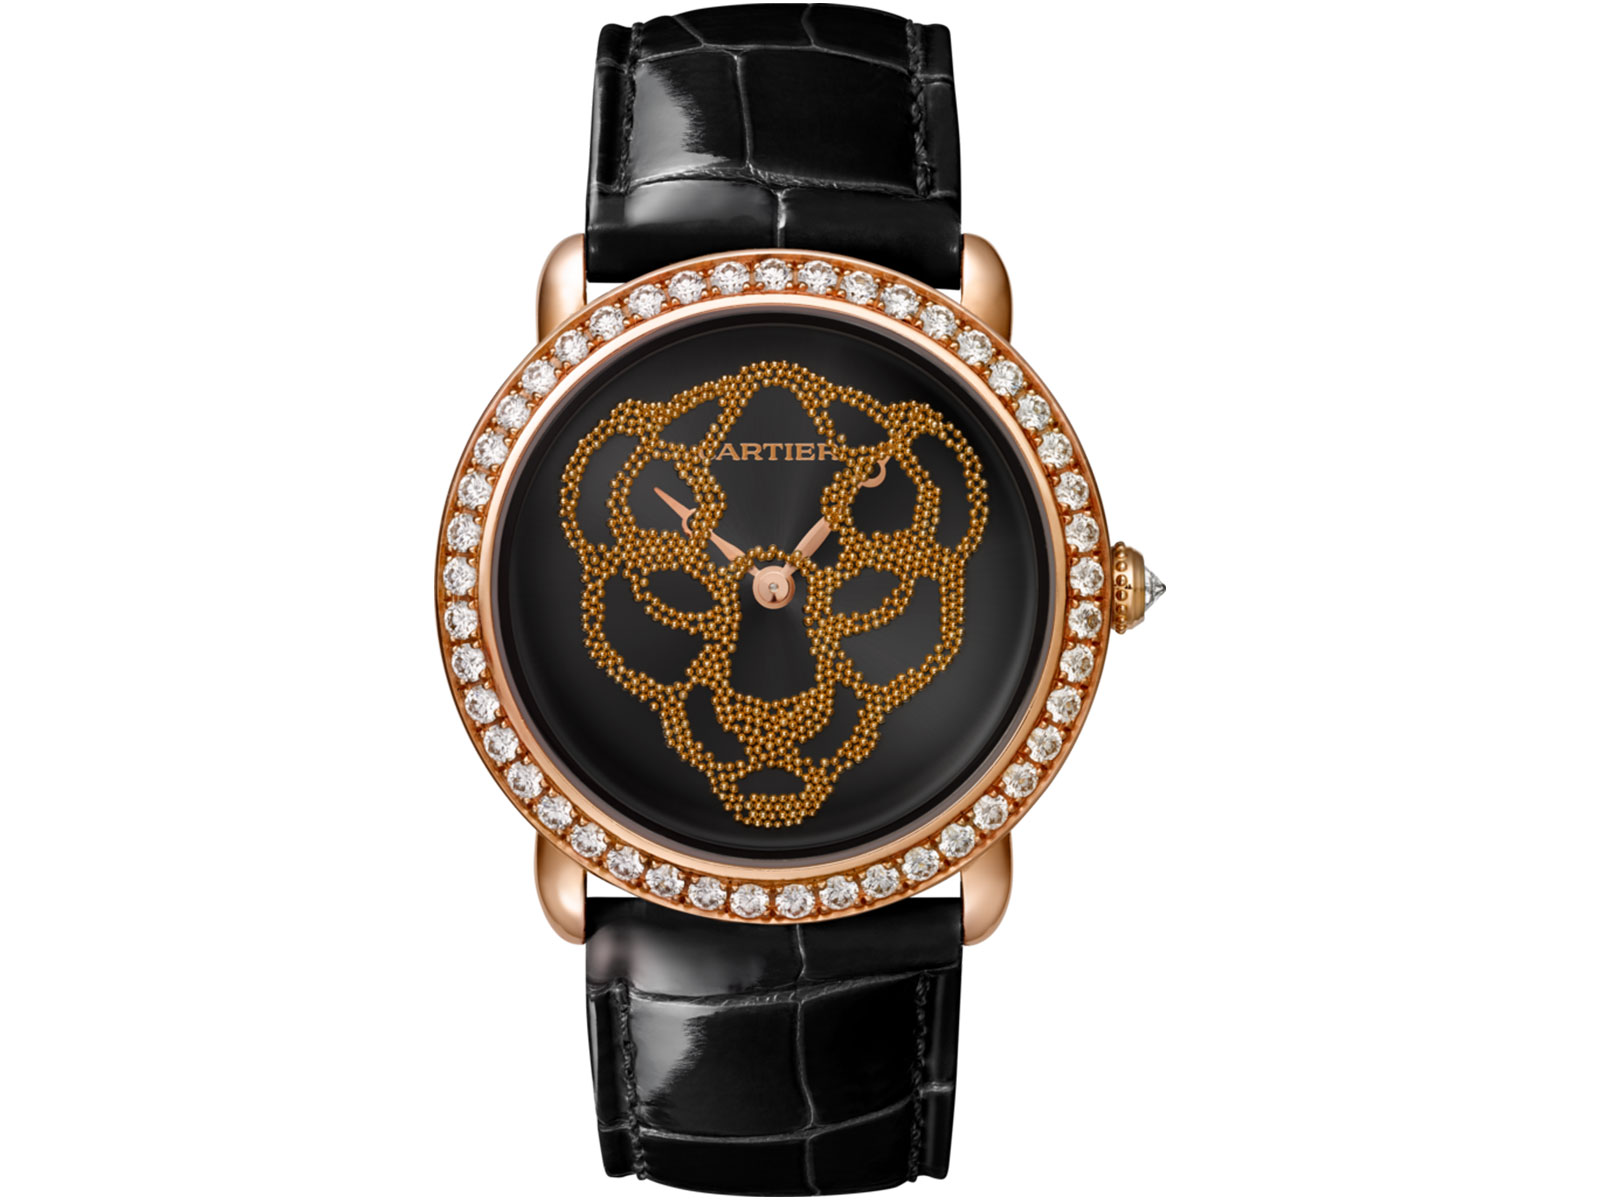 HP-01259-Cartier-Panthere-Collection-Sihh2018-Black-1.jpg